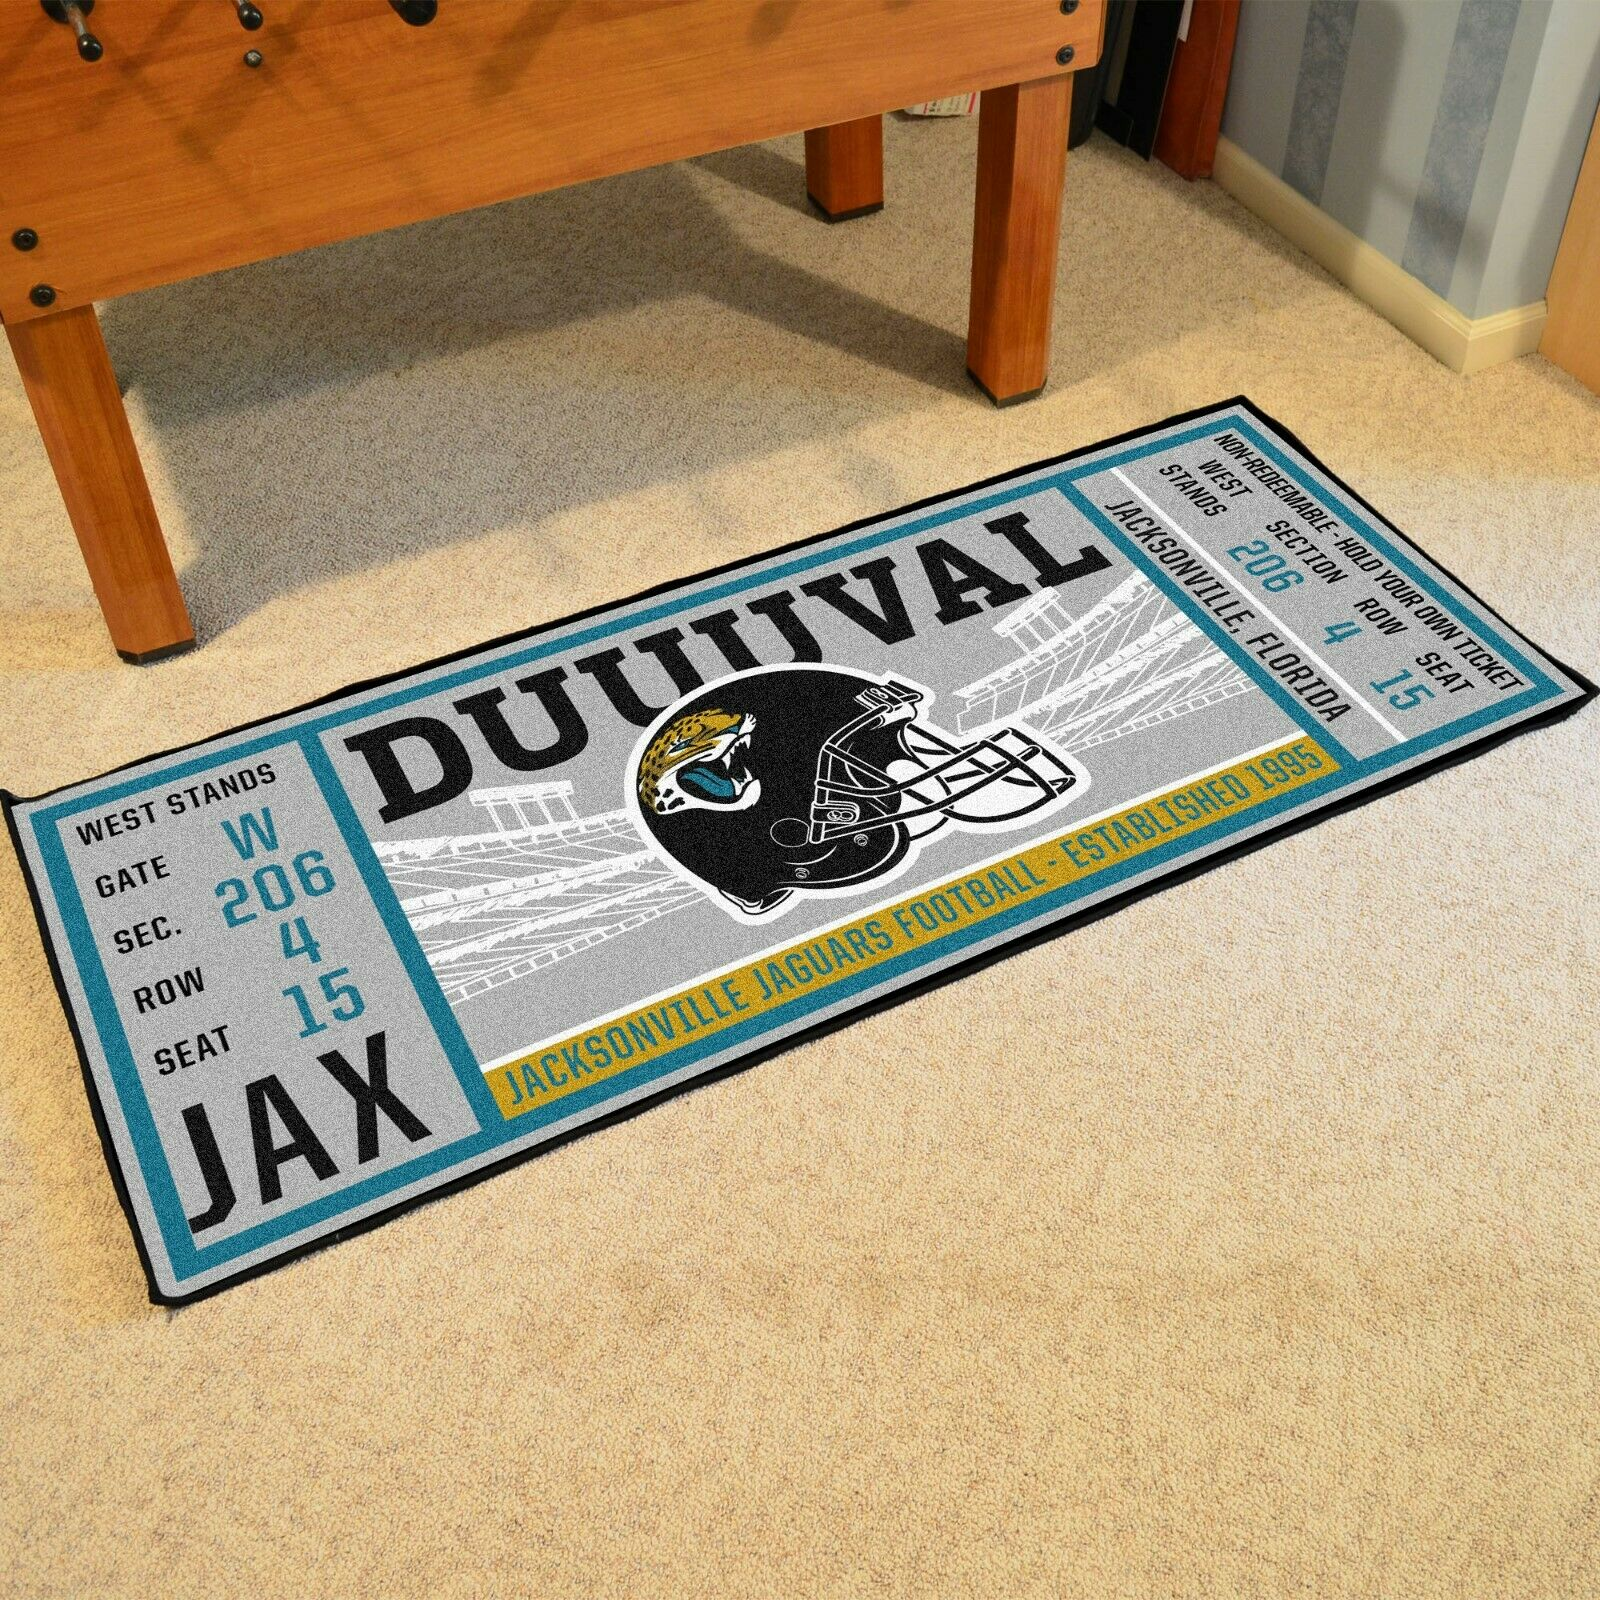 Jacksonville Jaguars 30 X 72 Ticket Runner Area Rug Floor Mat Nfl Fanmats For Sale Online Ebay